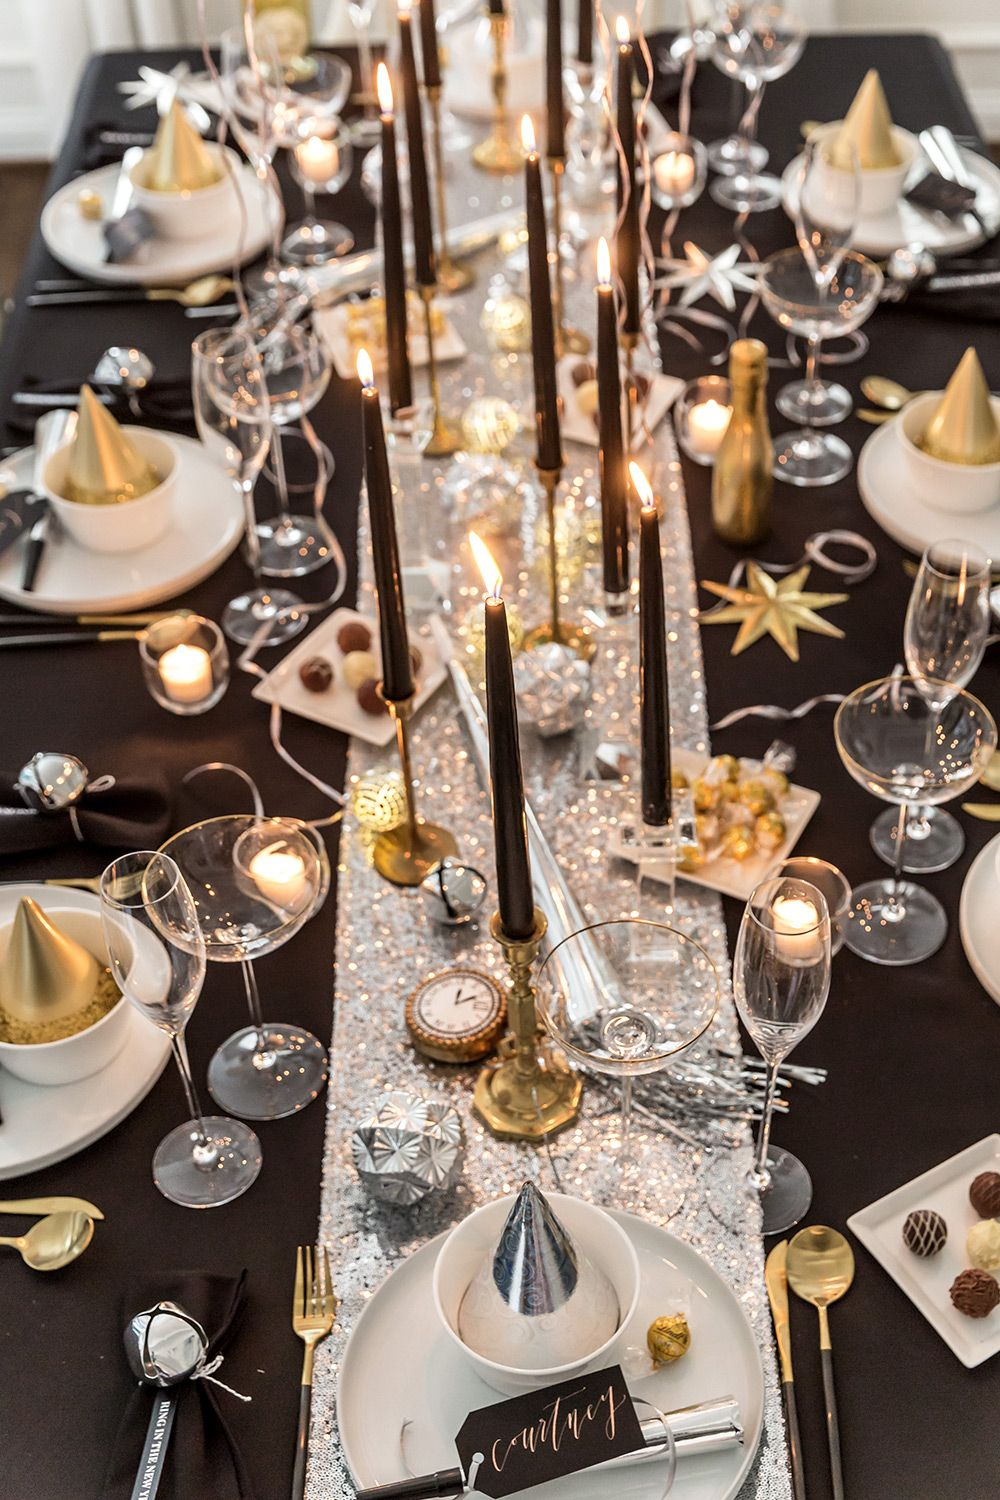 How to Host a New Year's Eve Dinner Party | Pizzazzerie